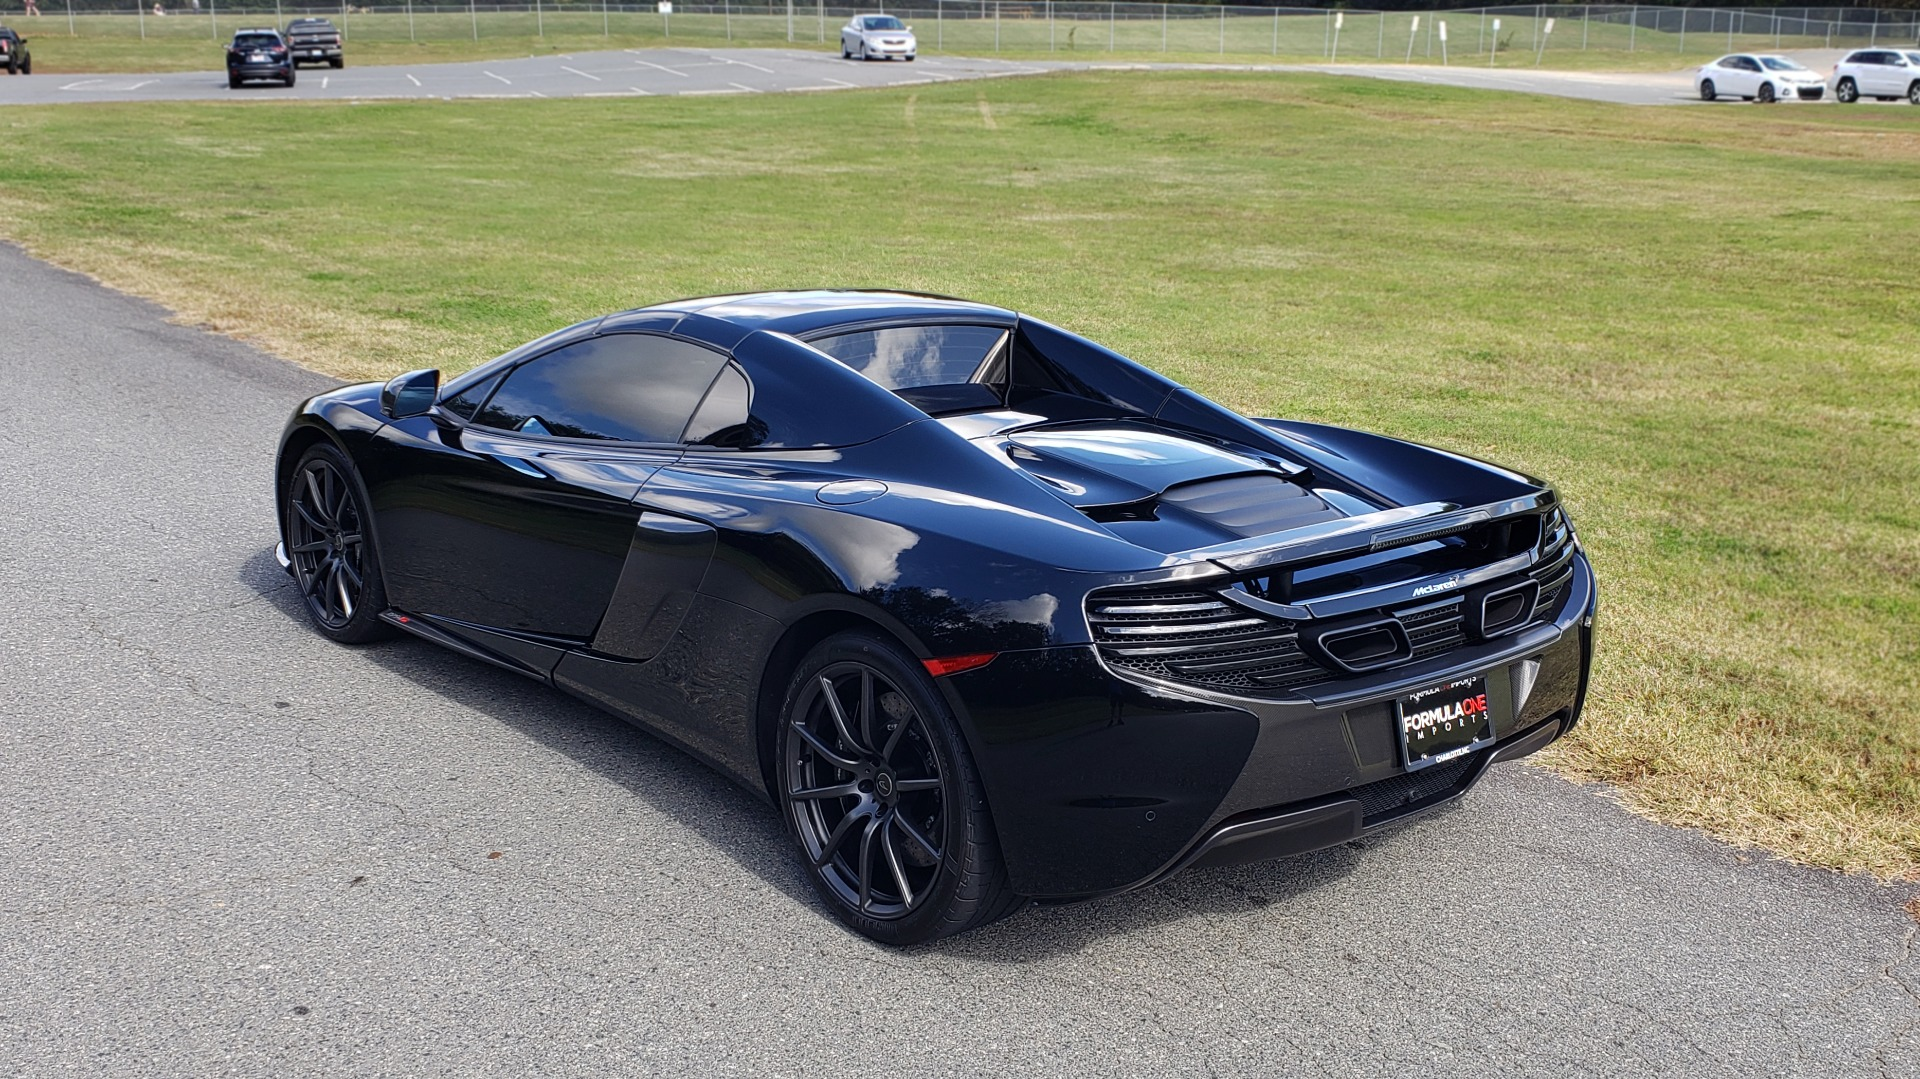 Used 2016 McLaren 650S SPIDER / 641HP / PARK SENSORS / LOW MILES / 1-OWNER for sale Sold at Formula Imports in Charlotte NC 28227 8